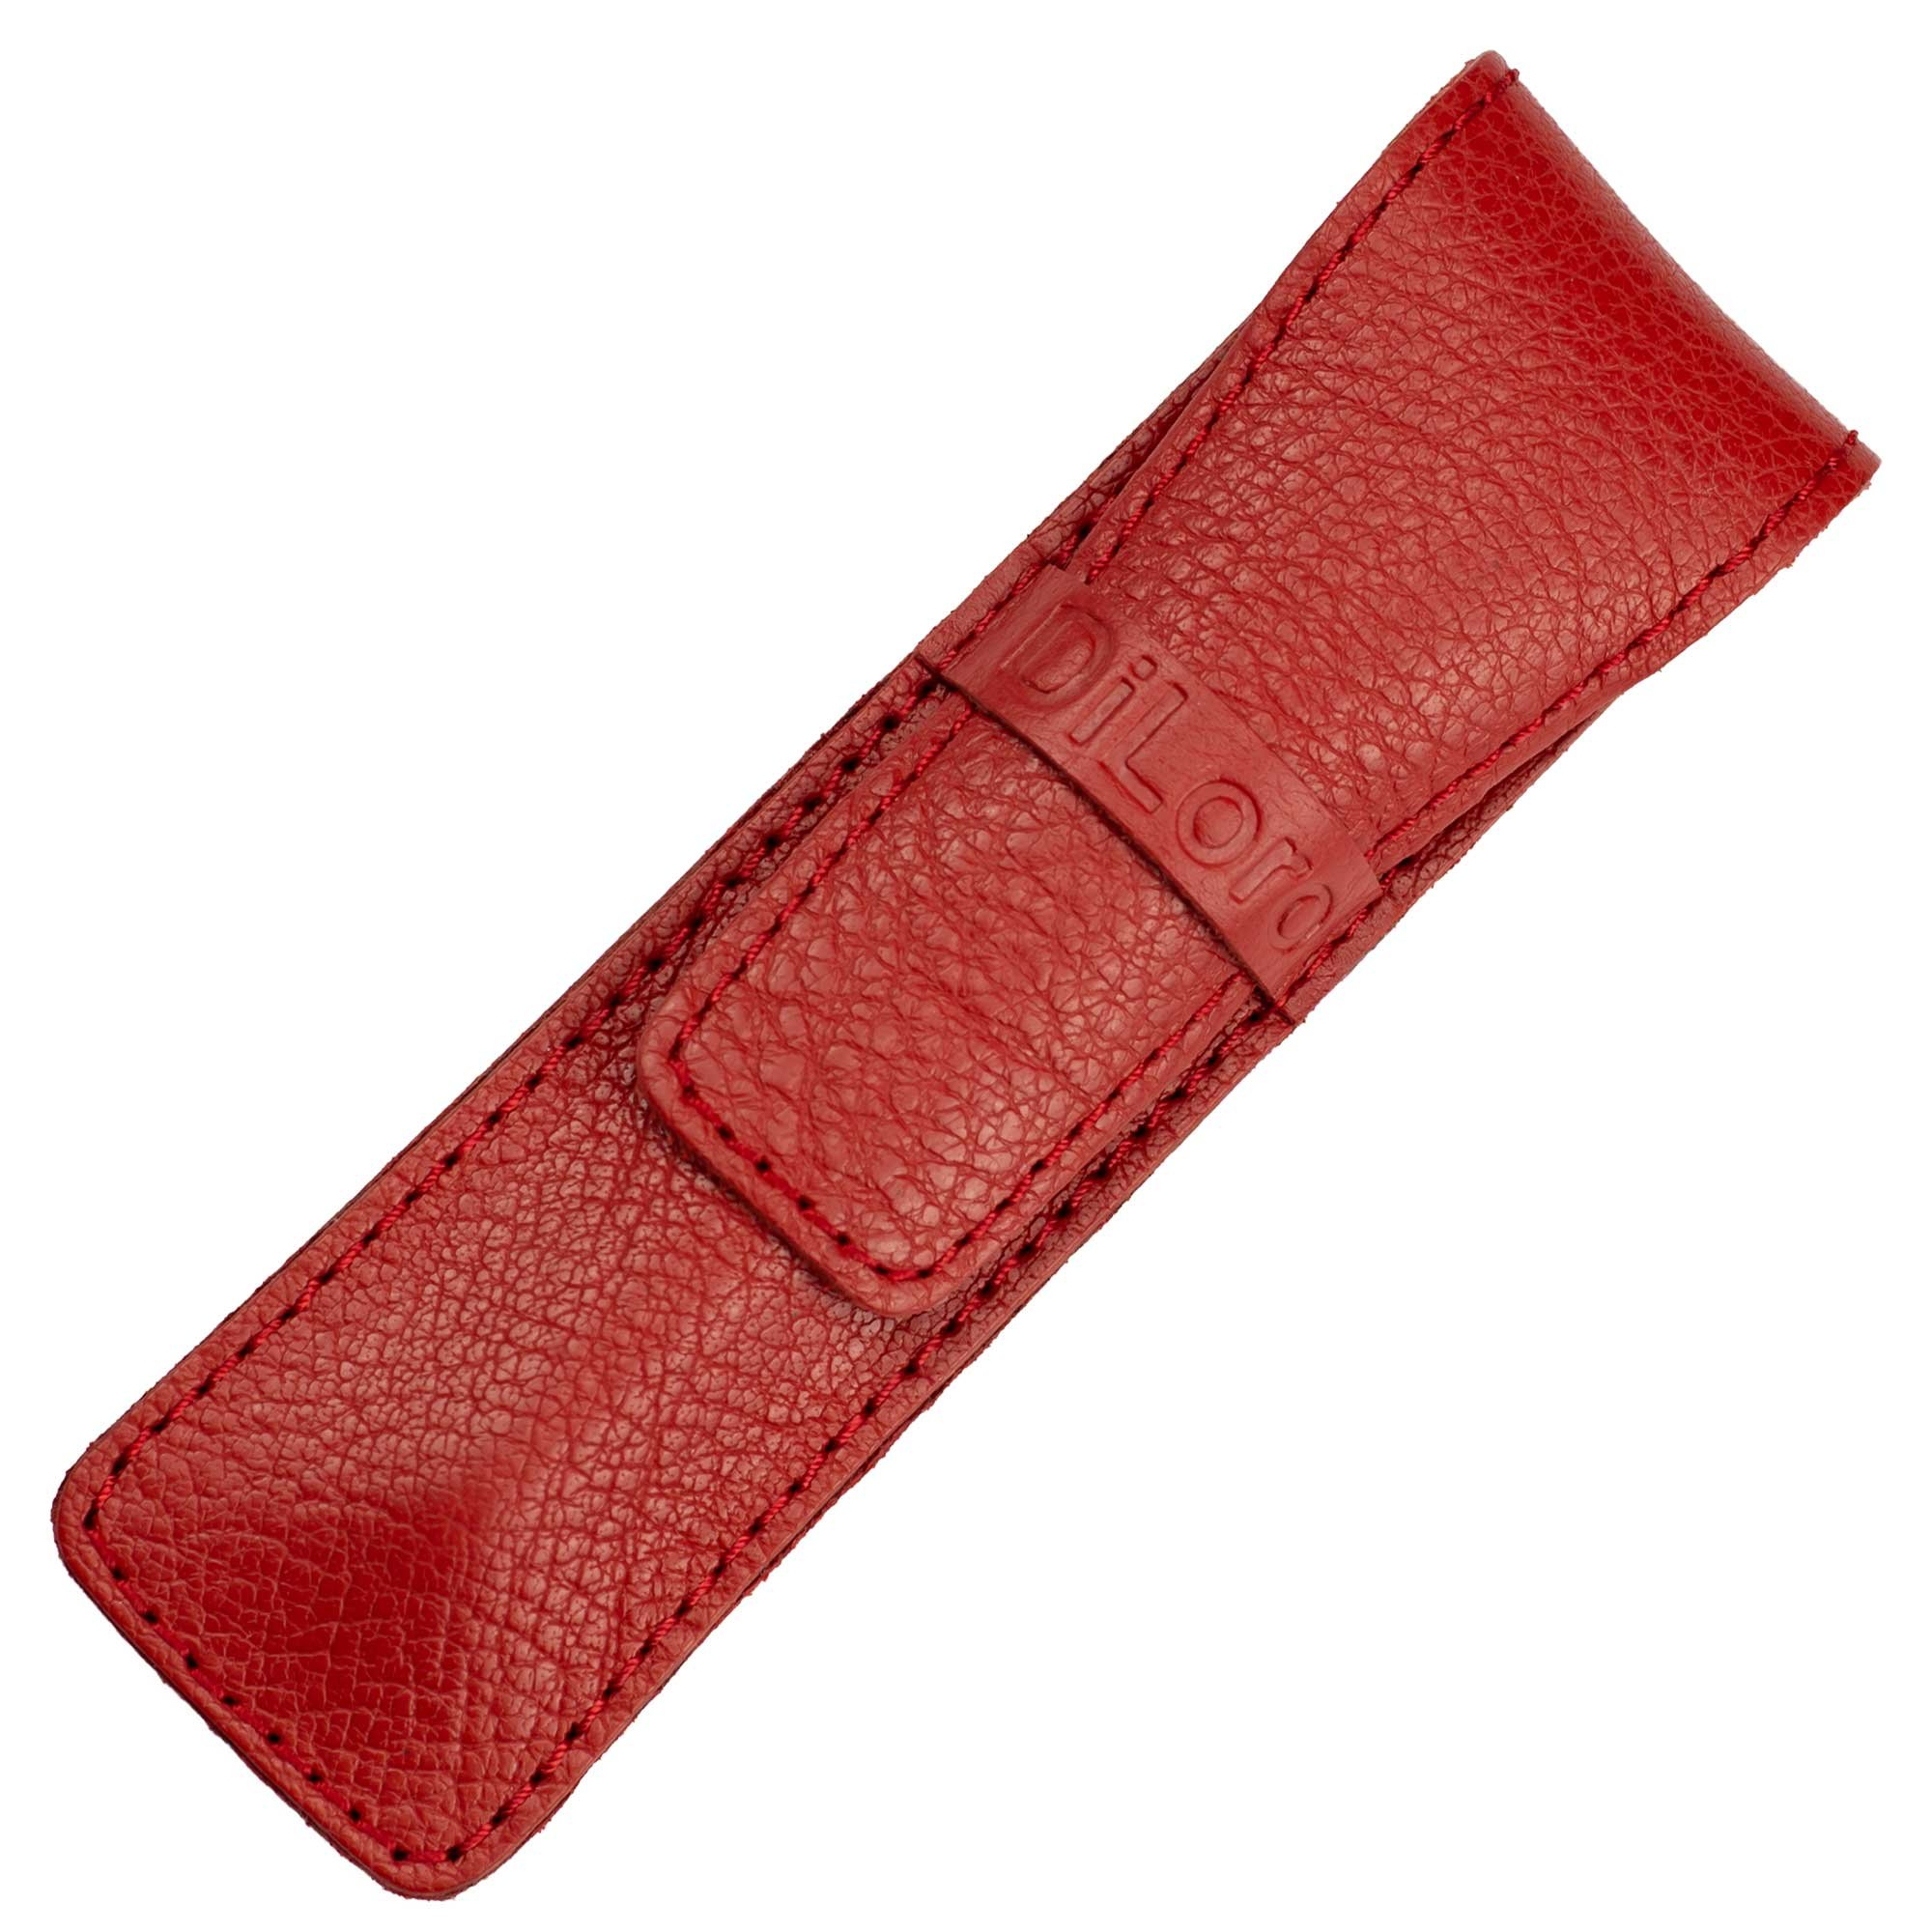 DiLoro Full Grain Top Quality Thick Buffalo Leather Single Pen Case Holder Buffalo Red